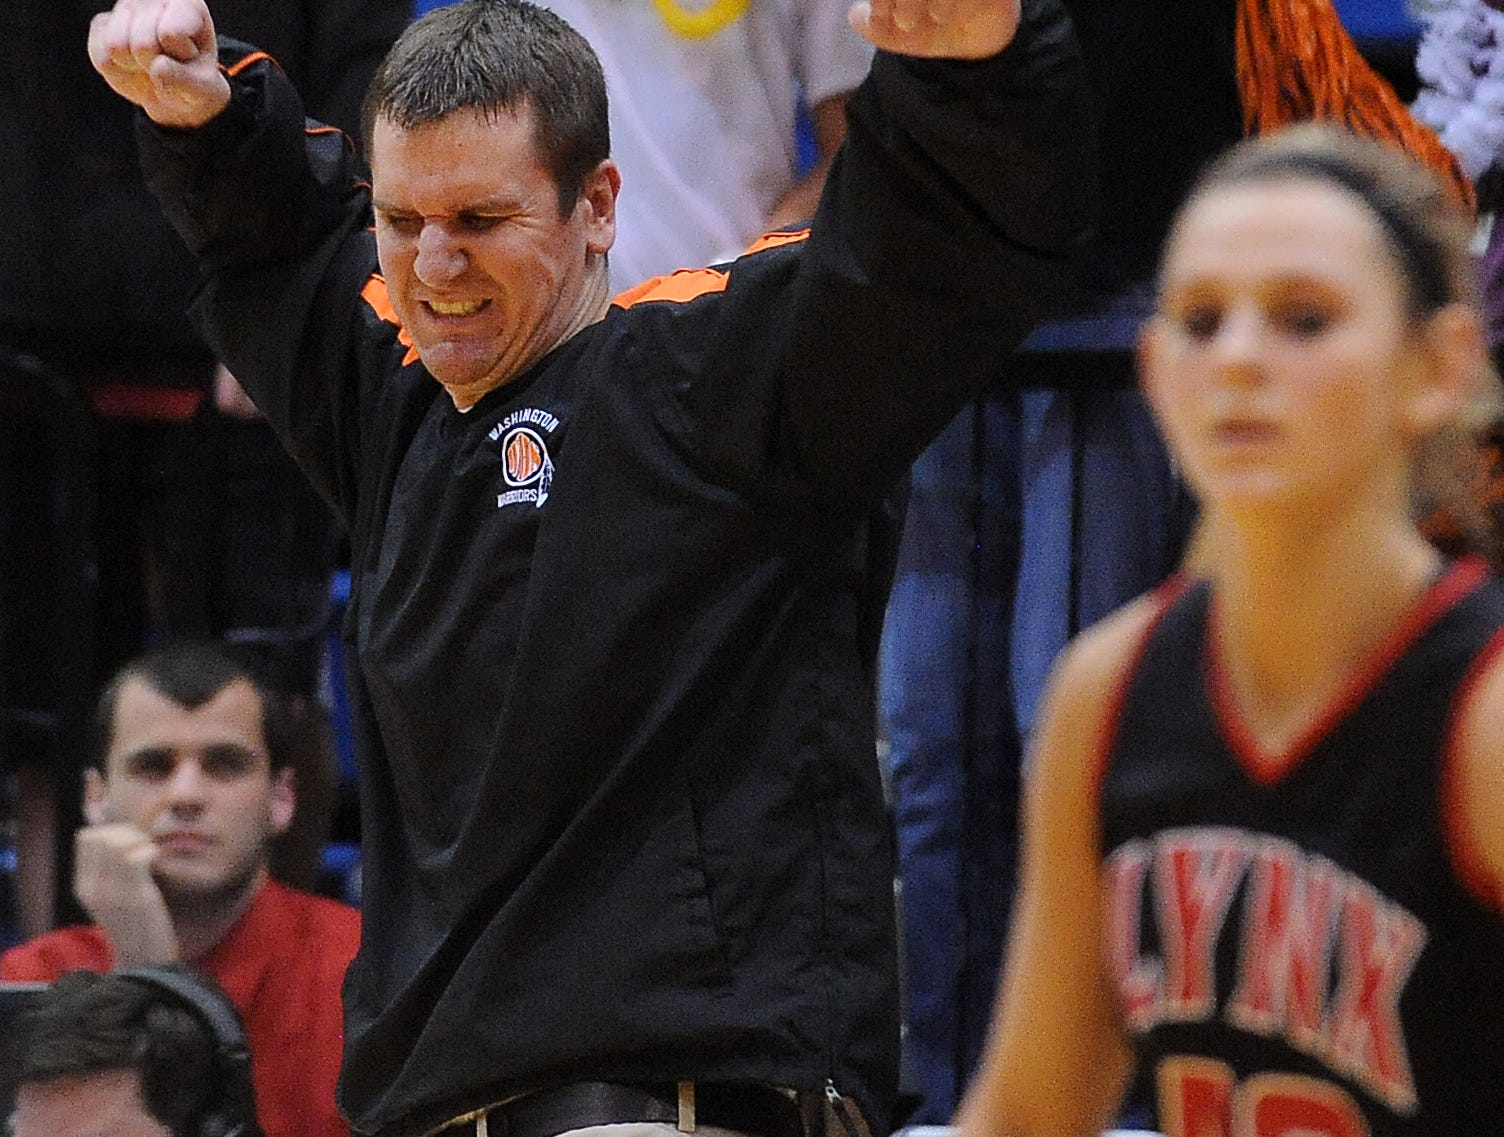 Washington Warrior head coach, Nate Malchow celebrates his team's 61-50 win over Brandon Valley Friday night in the girls class AA basketball semifinals at Frost Arena in Brookings, March 9, 2012. (Elisha Page/Argus Leader)